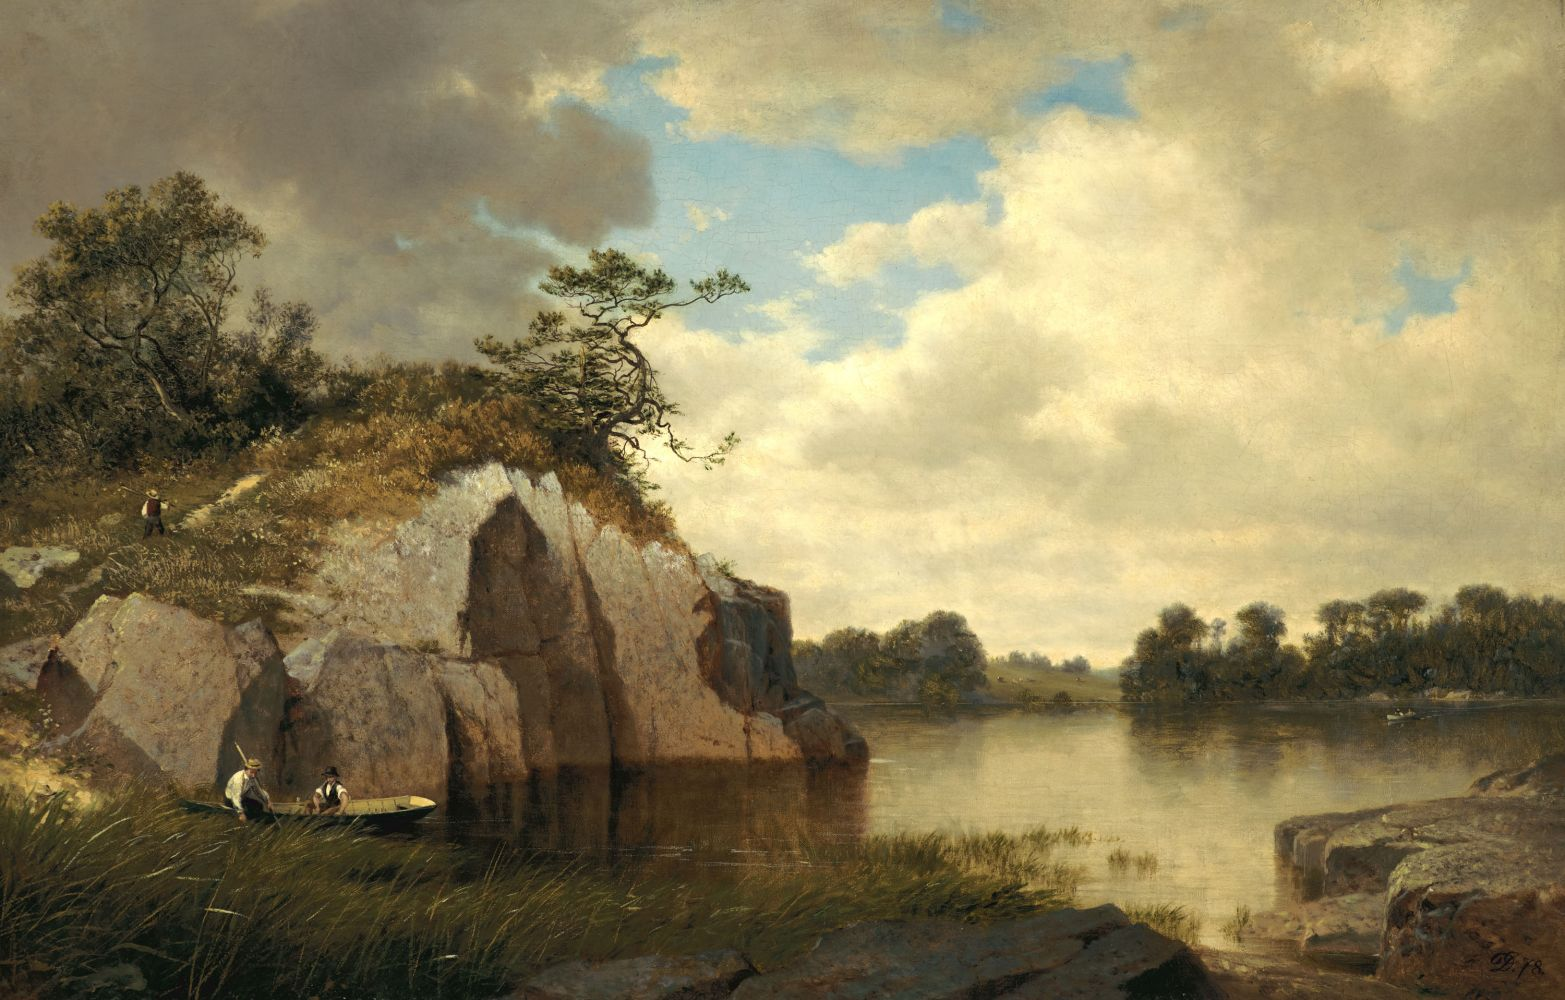 David Johnson (1827–1908), Catnip Island near Greenwich, Connecticut, 1878-79, oil on canvas, 22 x 34 in.,  signed and dated lower right: DJ 78, inscribed on verso: Catnip Island near / Greenwich, / Conn. / David Johnson 1879